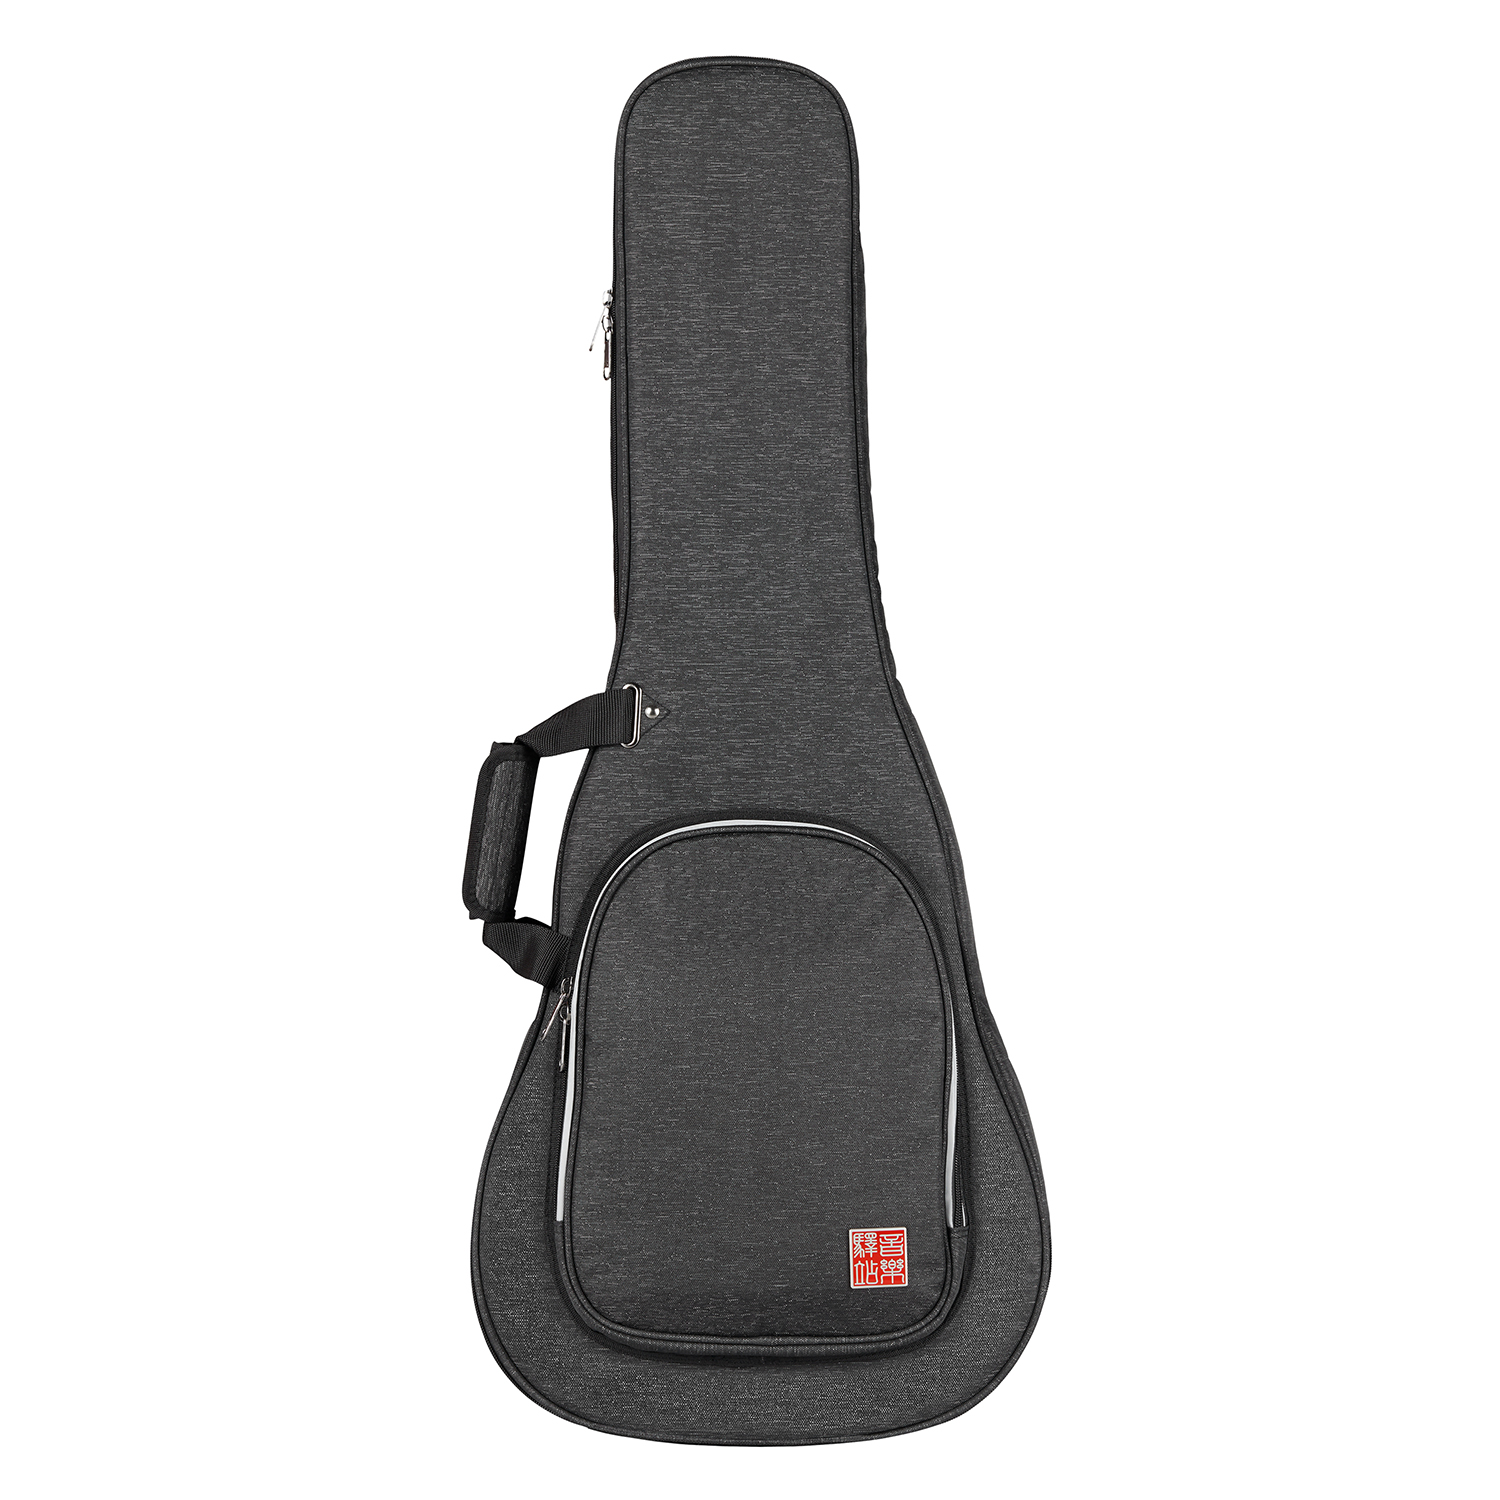 Music Area RB20 Acoustic Guitar Gig Bag Waterproof with 20mm cushion protection - Black 12mm waterproof soprano concert ukulele bag case backpack 23 24 26 inch ukelele beige mini guitar accessories gig pu leather